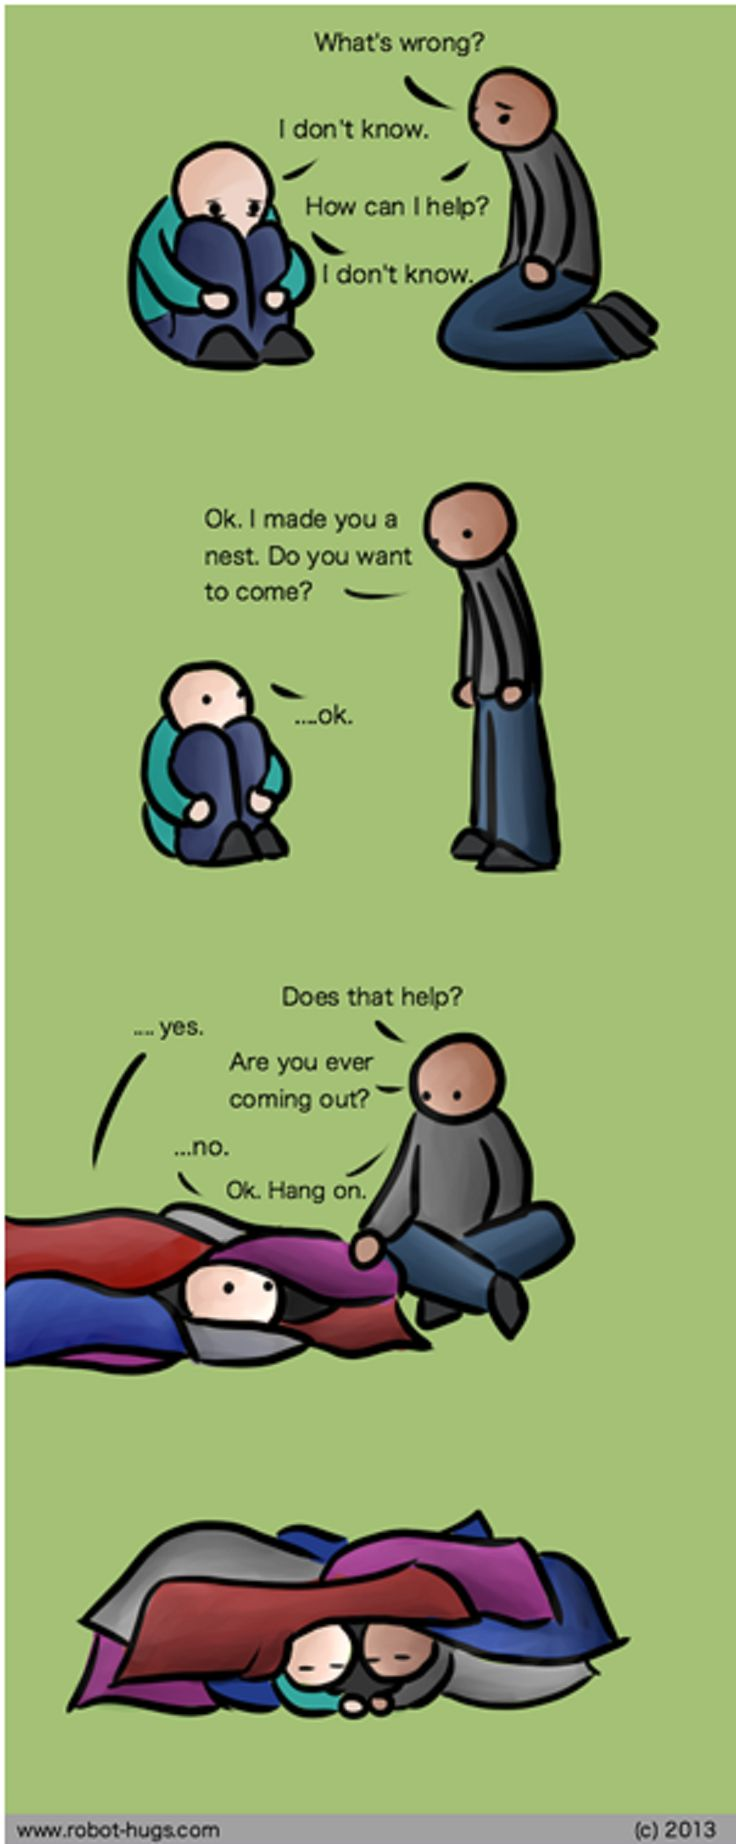 awww...♥ people who have friends/family that deal with depression need to understand that sometimes this is all we need.